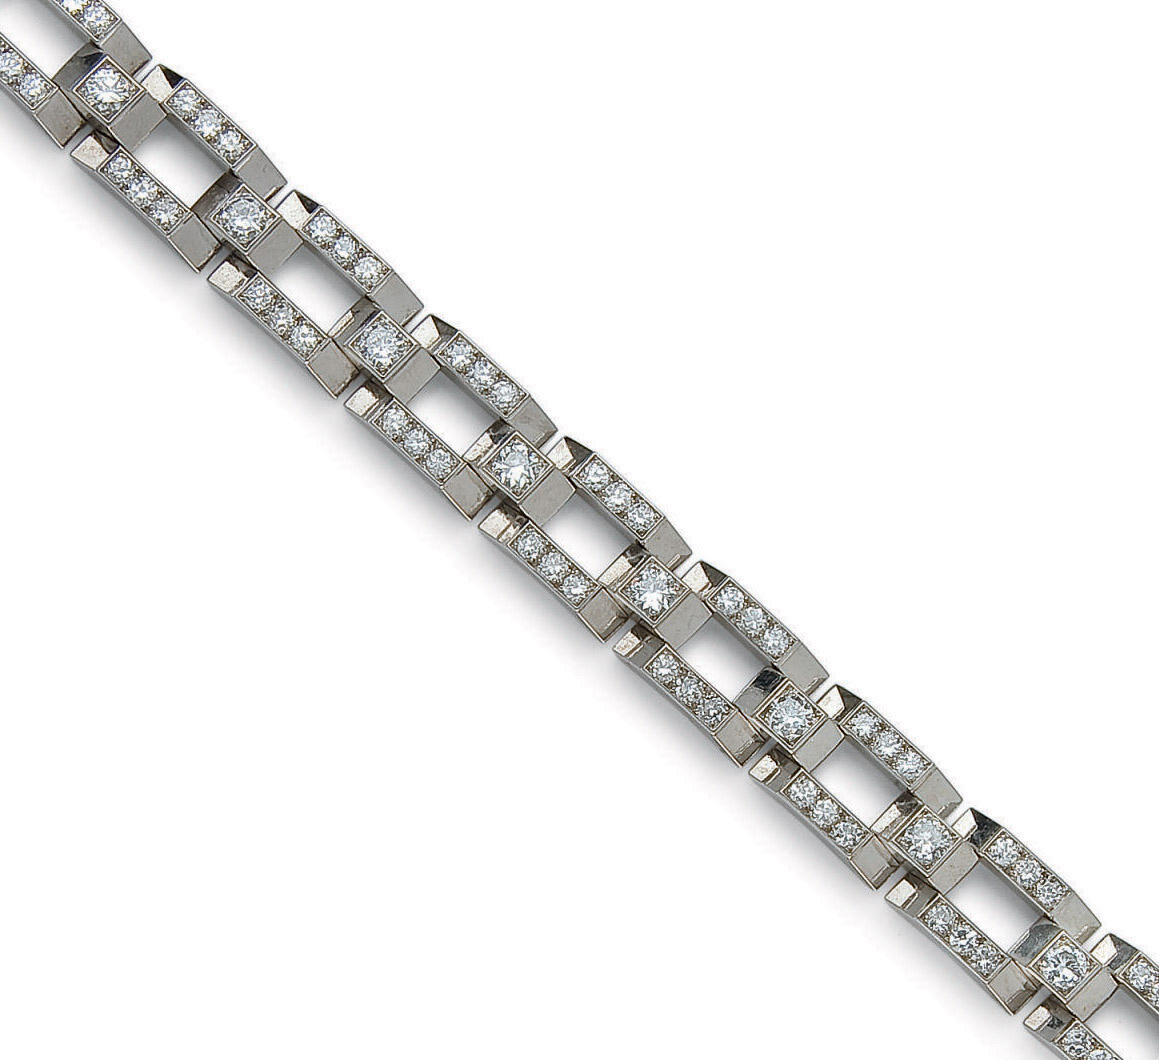 BRACELET TANK DIAMANTS